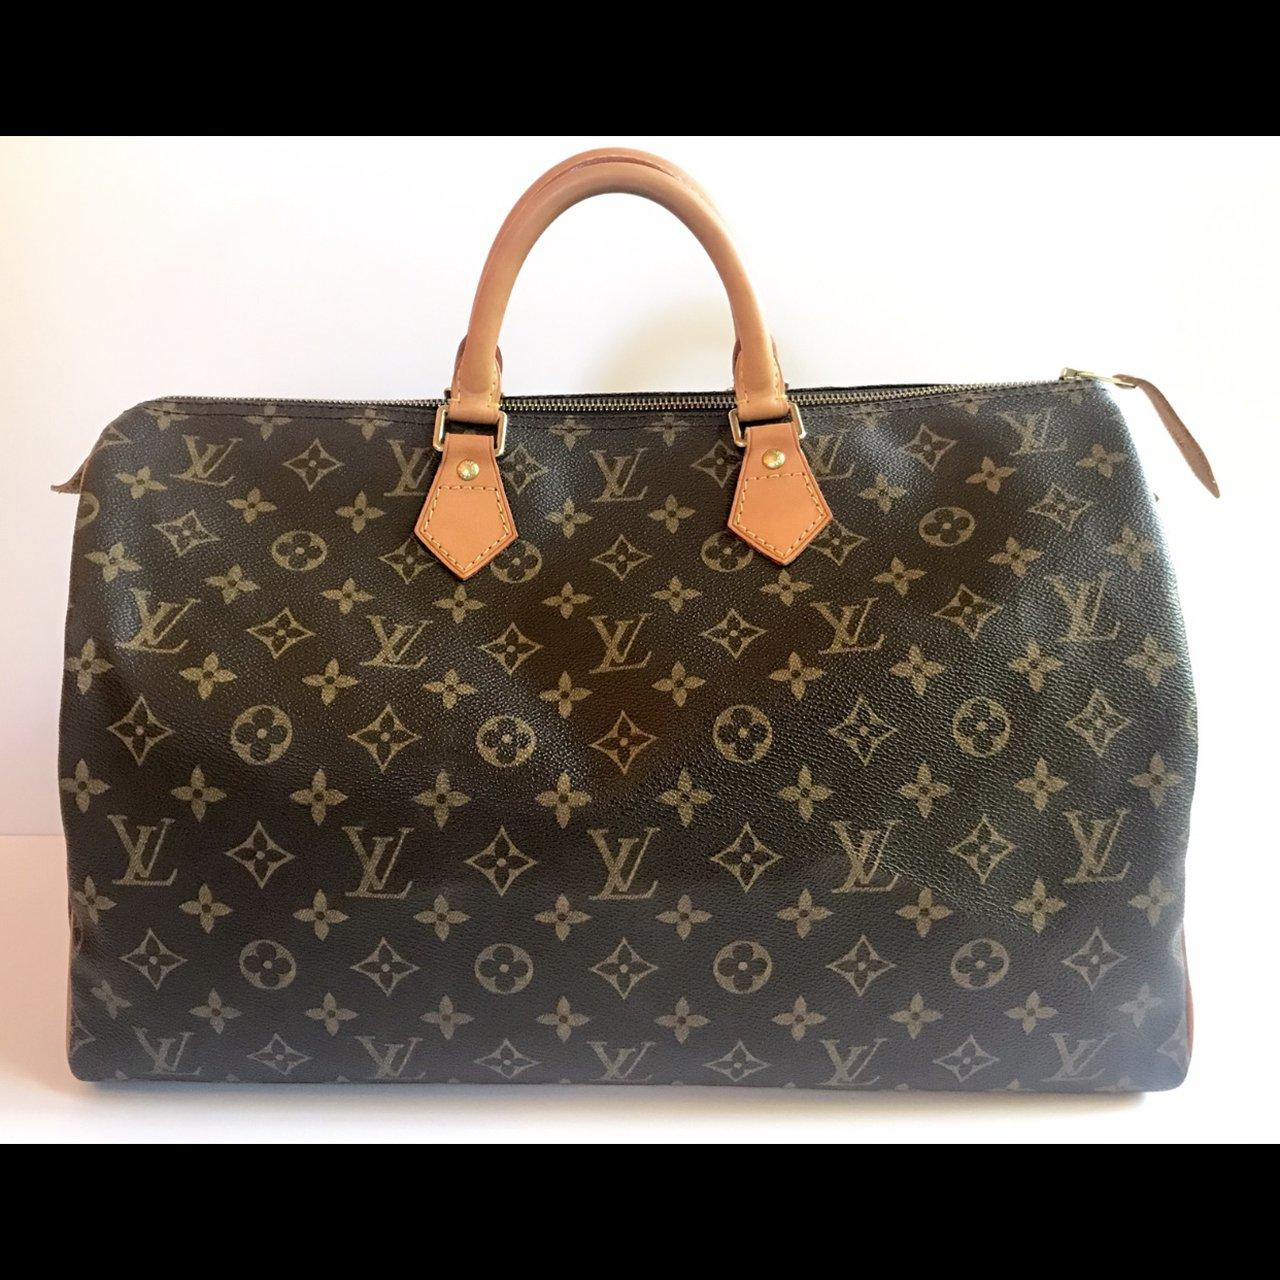 c72e26a39f17 LOUIS VUITTON SPEEDY 40 MONOGRAM - Comes with dust bag - - Depop